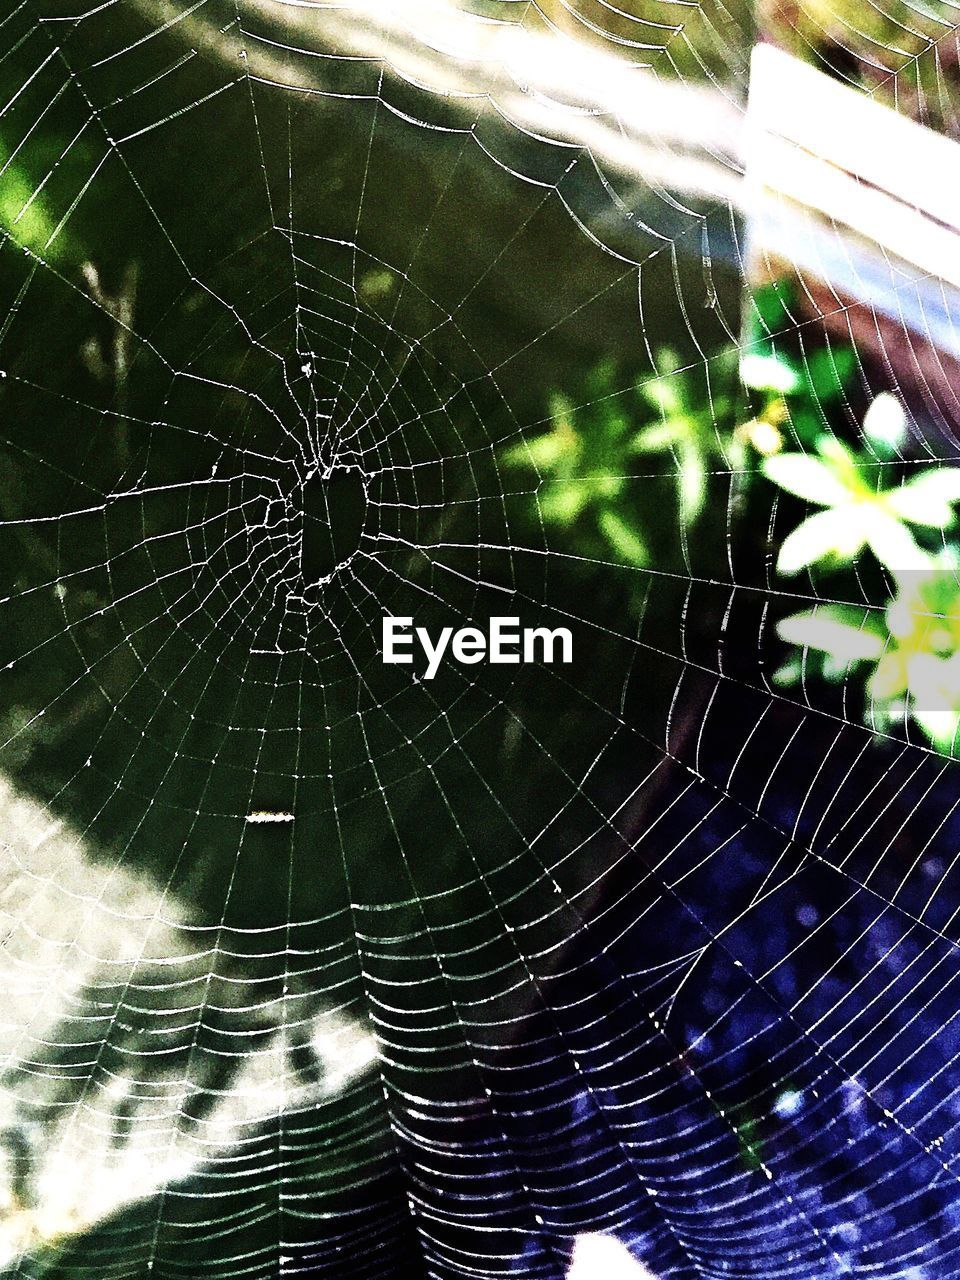 spider web, spider, web, one animal, nature, close-up, animal themes, focus on foreground, no people, animals in the wild, outdoors, fragility, survival, intricacy, day, beauty in nature